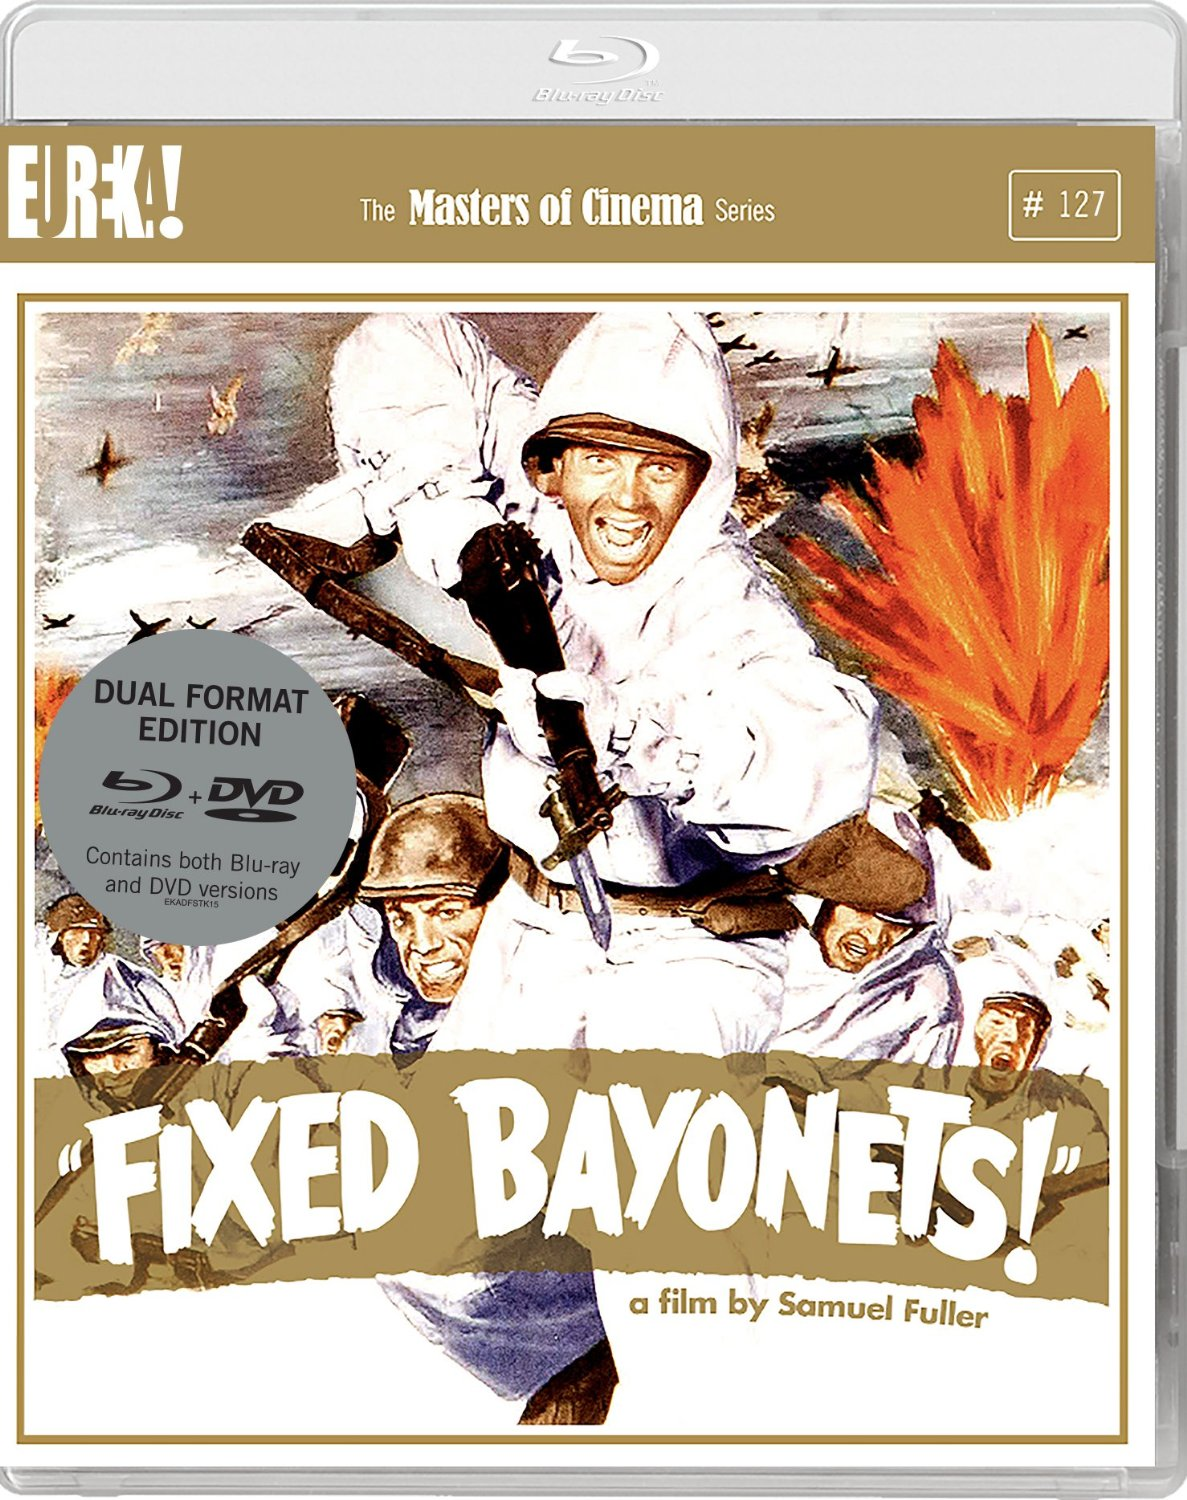 Buy Fixed Bayonets!